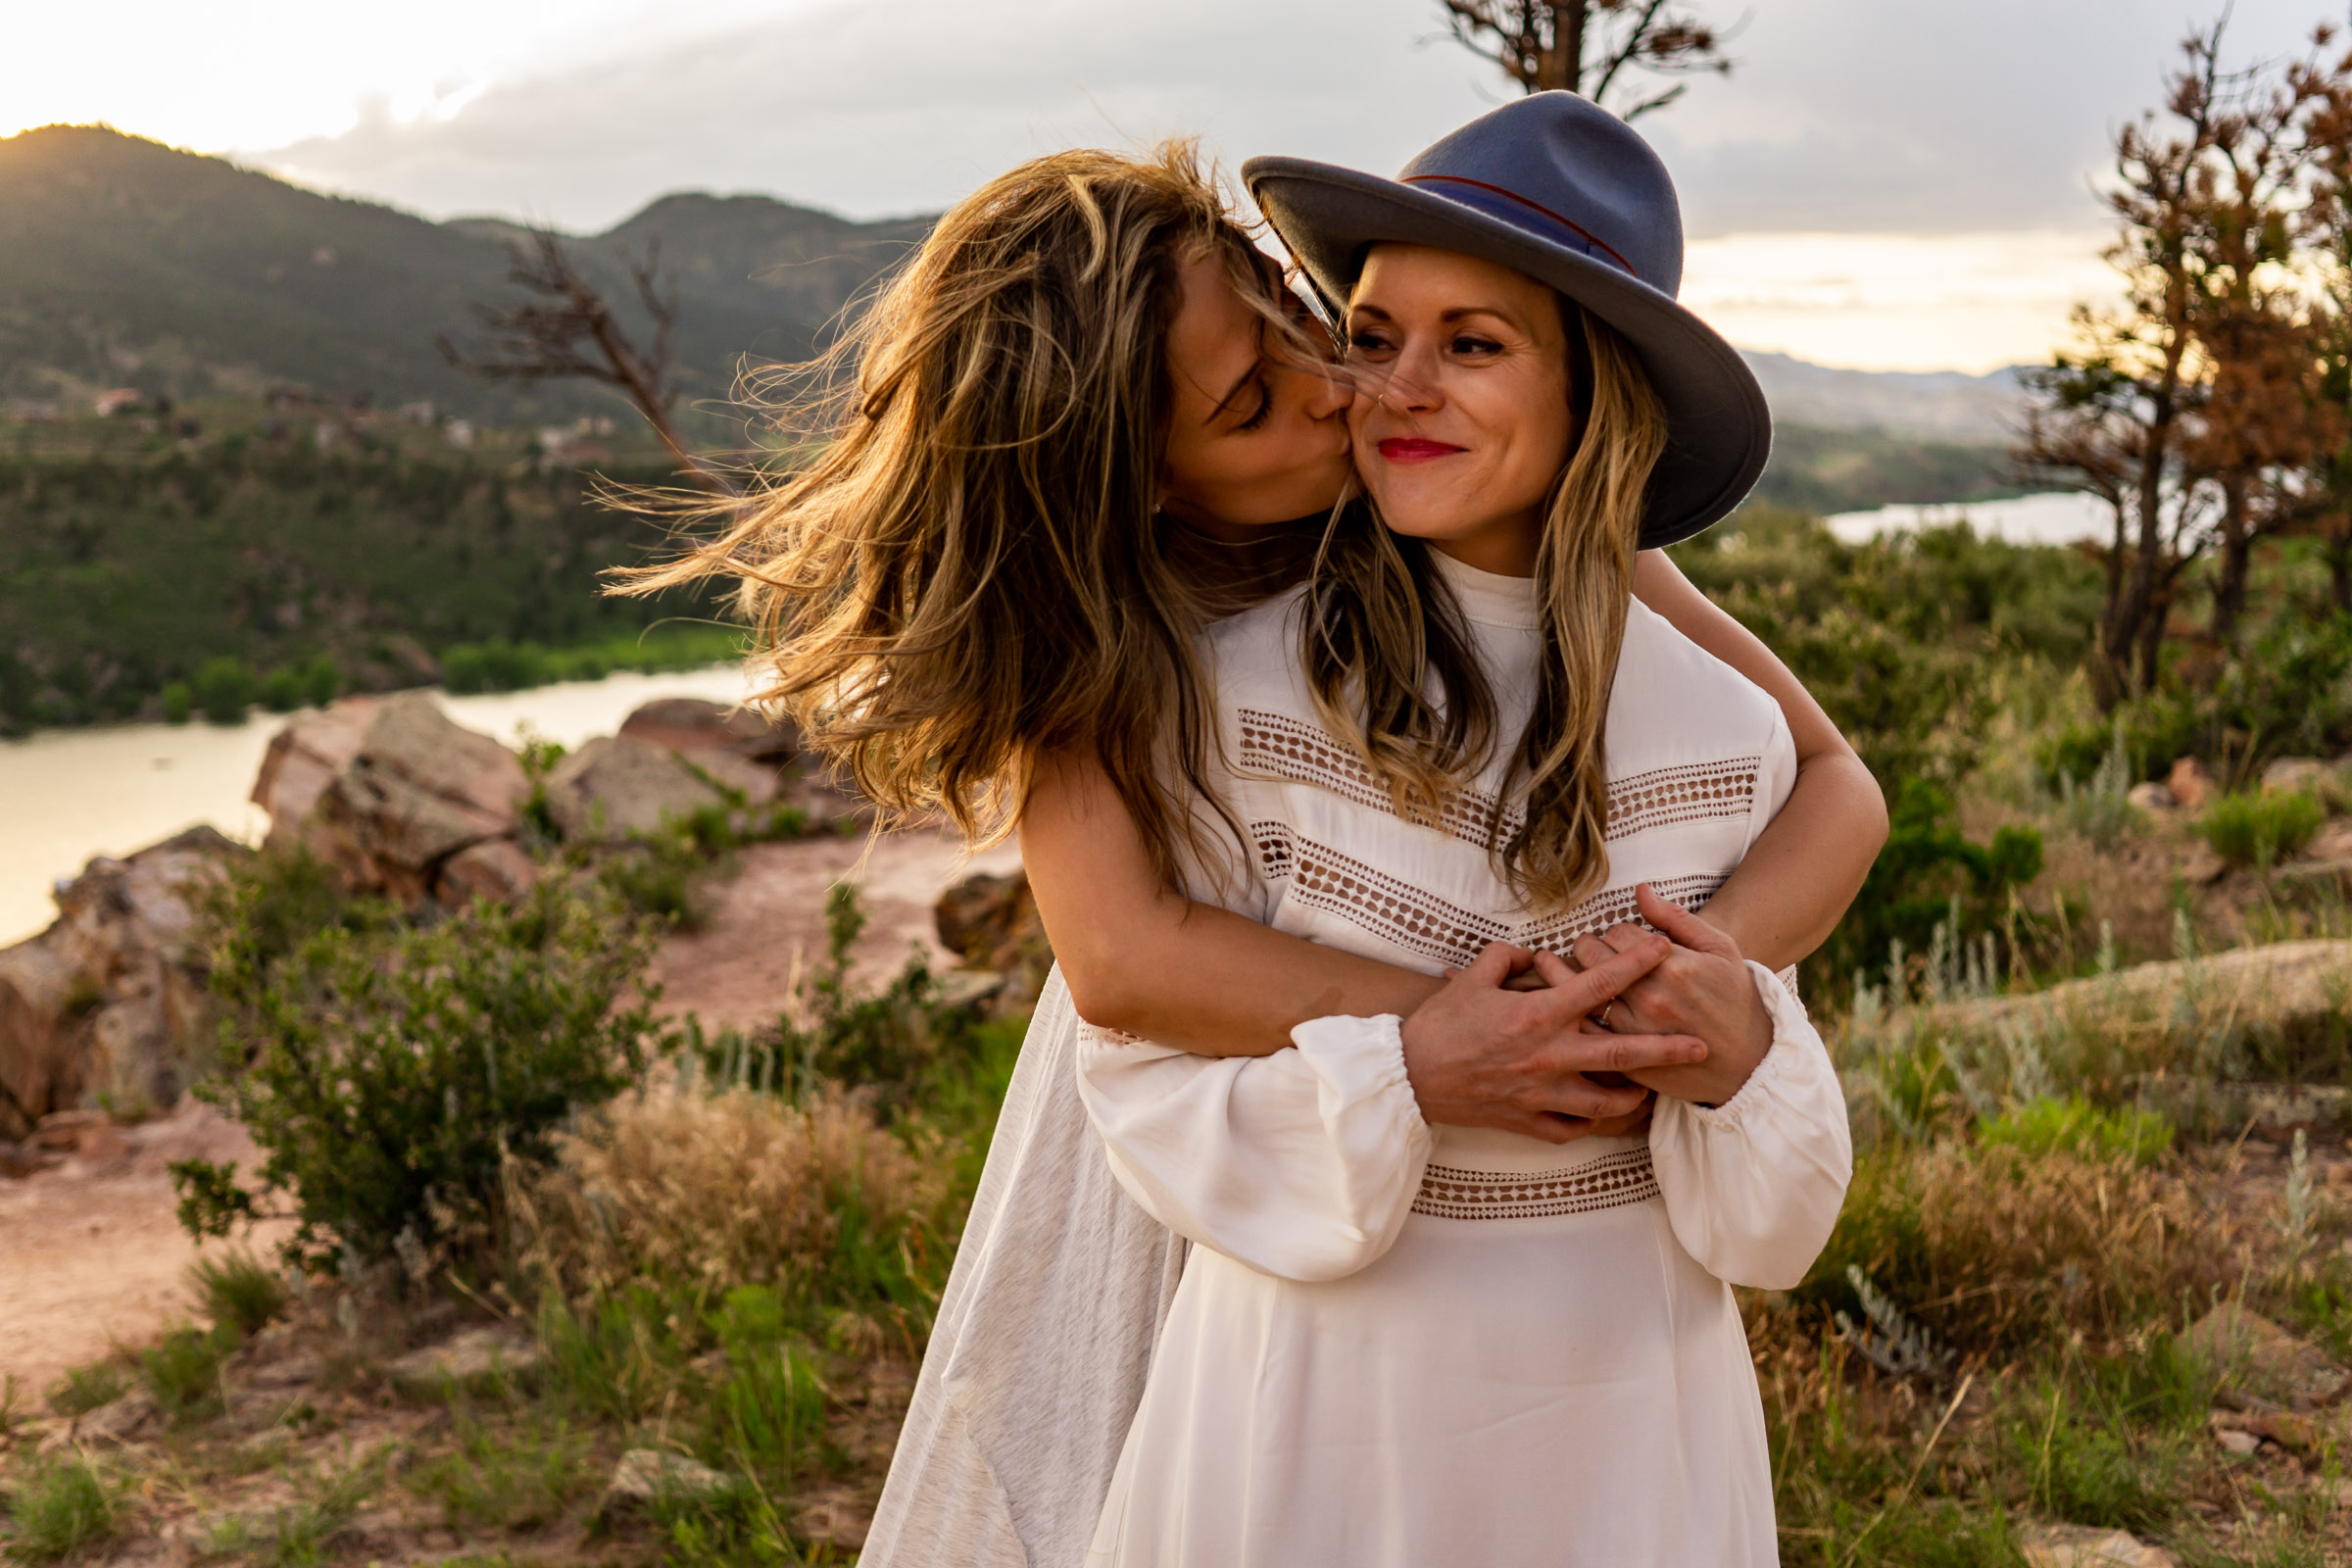 Two women wearing white dresses embracing and playing in front of a reservoir at sunset. Photo by Gabby Jockers Photography. Horsetooth reservoir elopement, horsetooth reservoir elopement photography, fort collins elopement, colorado elopement, colorado elopement photography, horsetooth reservoir engagement photos, horsetooth reservoir engagement session, sunset engagement session, sunset elopement, hiking elopement, hiking engagement, adventure photos, adventure session, LGBT elopement, adventure elopement, denver colorado photographer